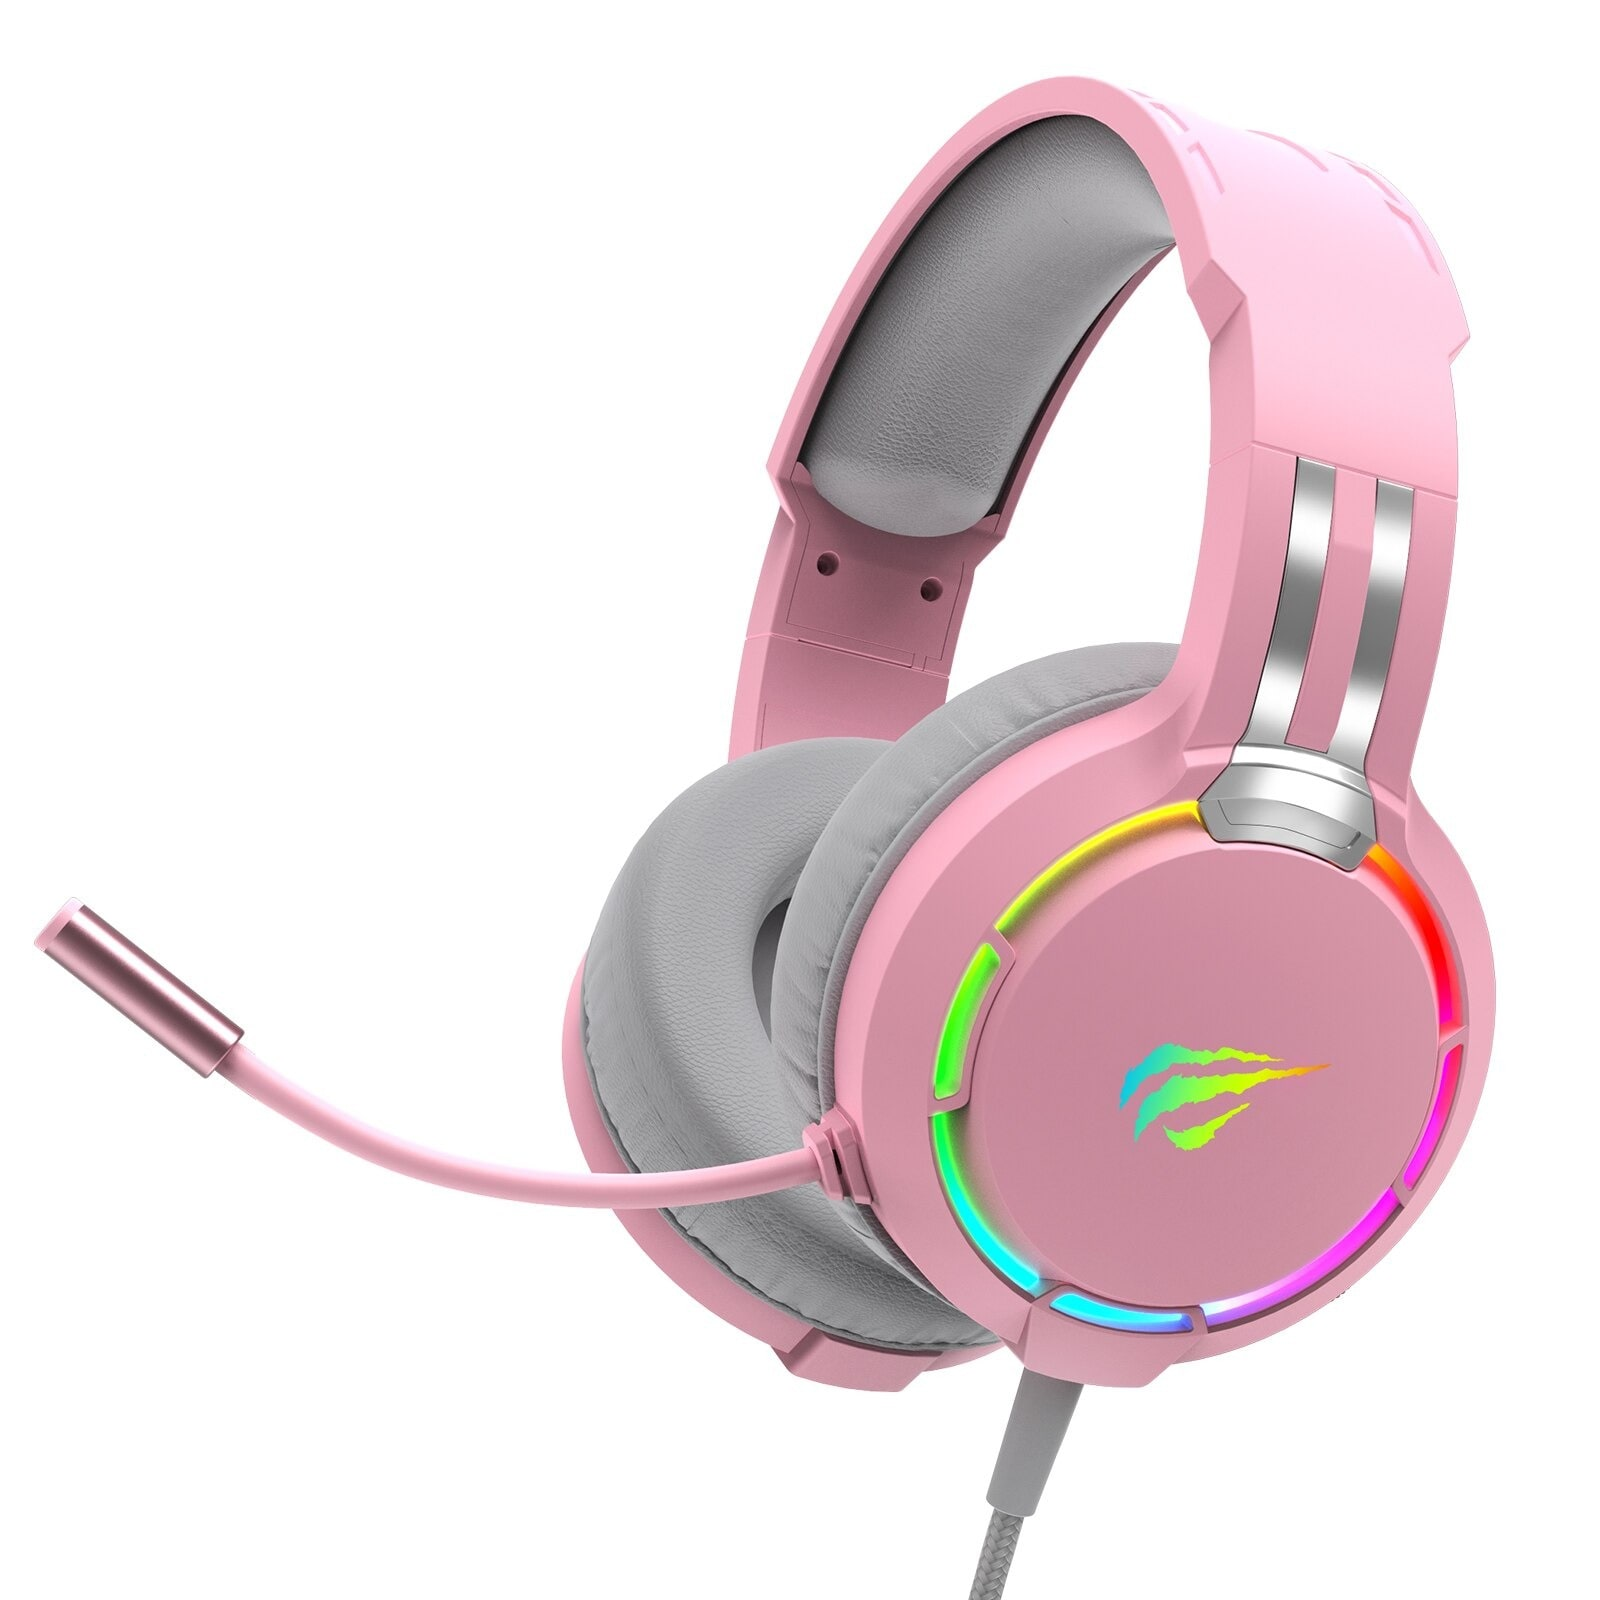 Havit Professional RGB Headset With Mic Switch for Computer, PS4, Xbox, phone Pink - 1